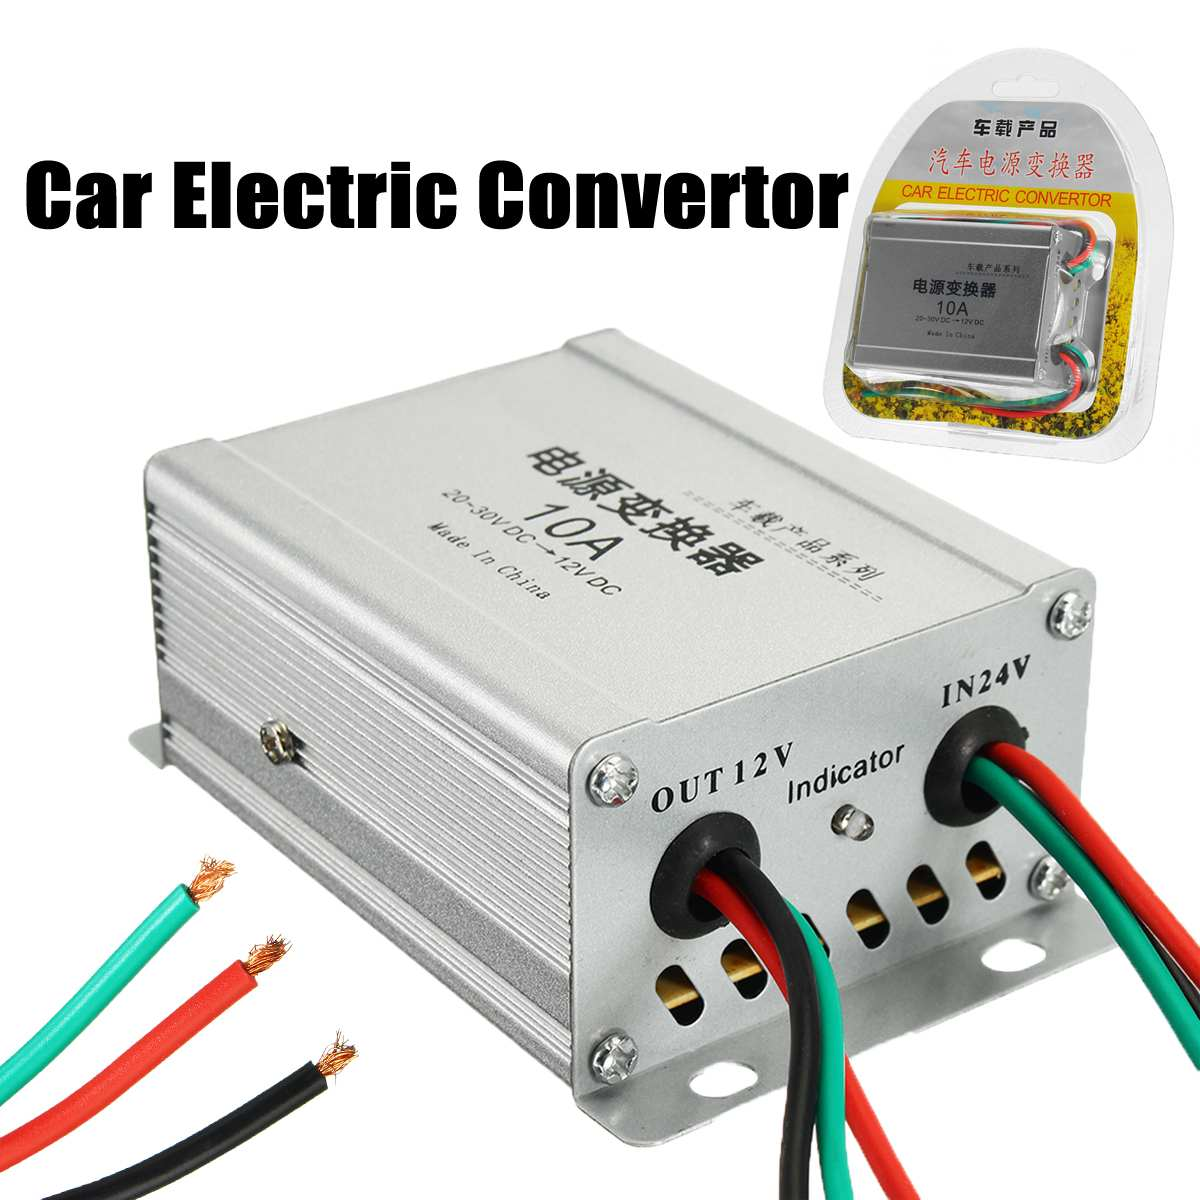 New DC 24 To 12V 10A 120w Car Electric Convertor Power Supply Inverter Transformer Car Inverters